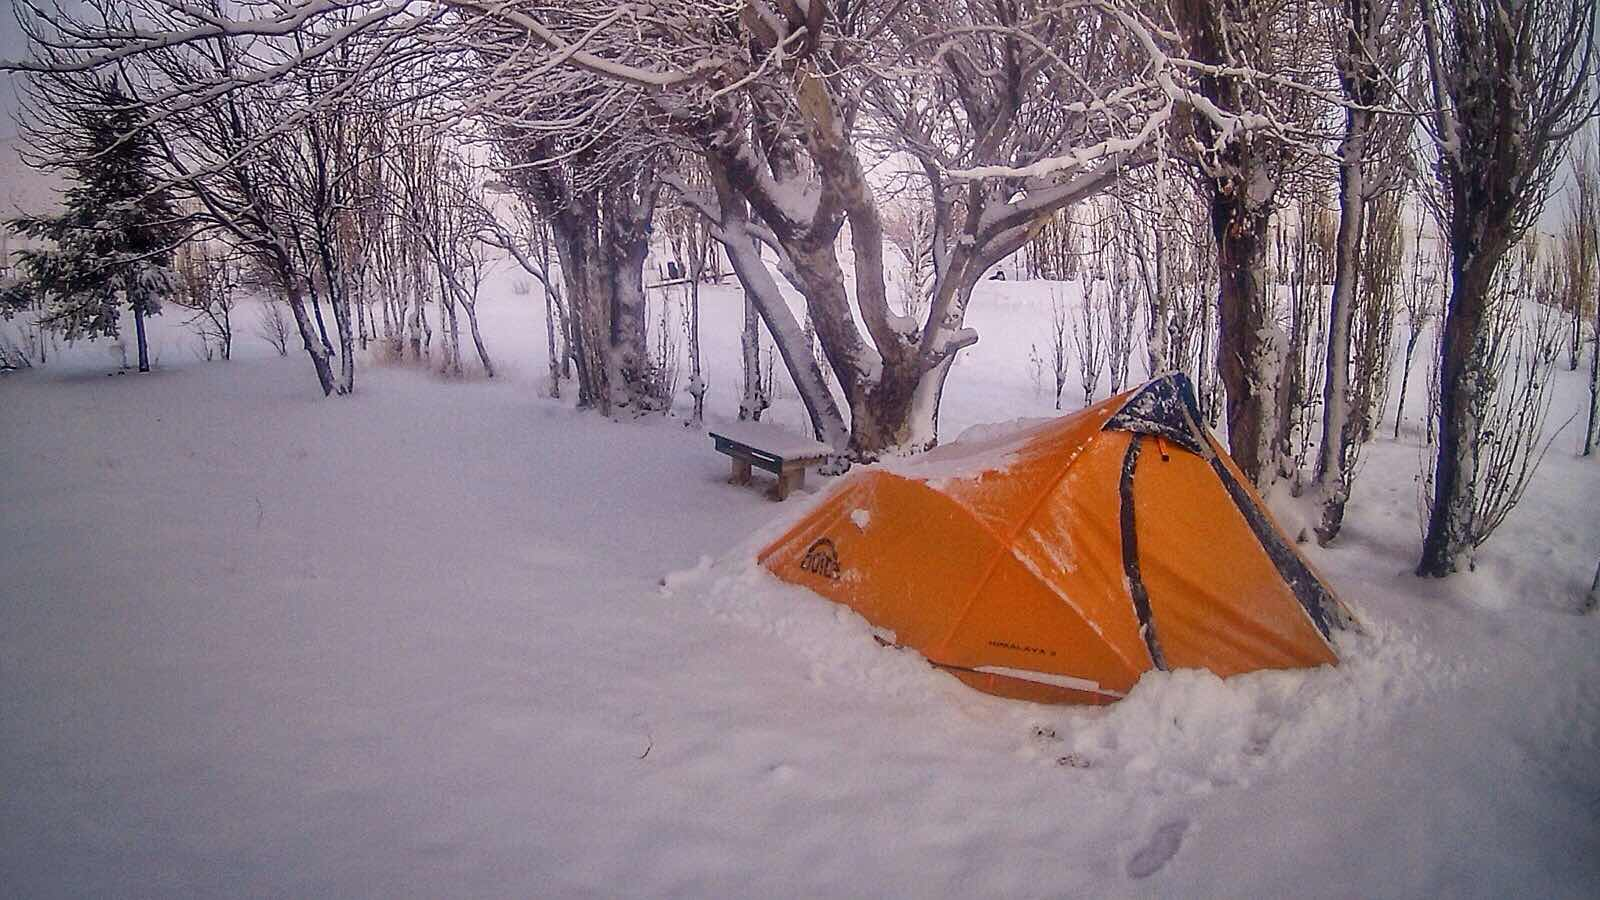 Snow camping in Patagonia Argentina